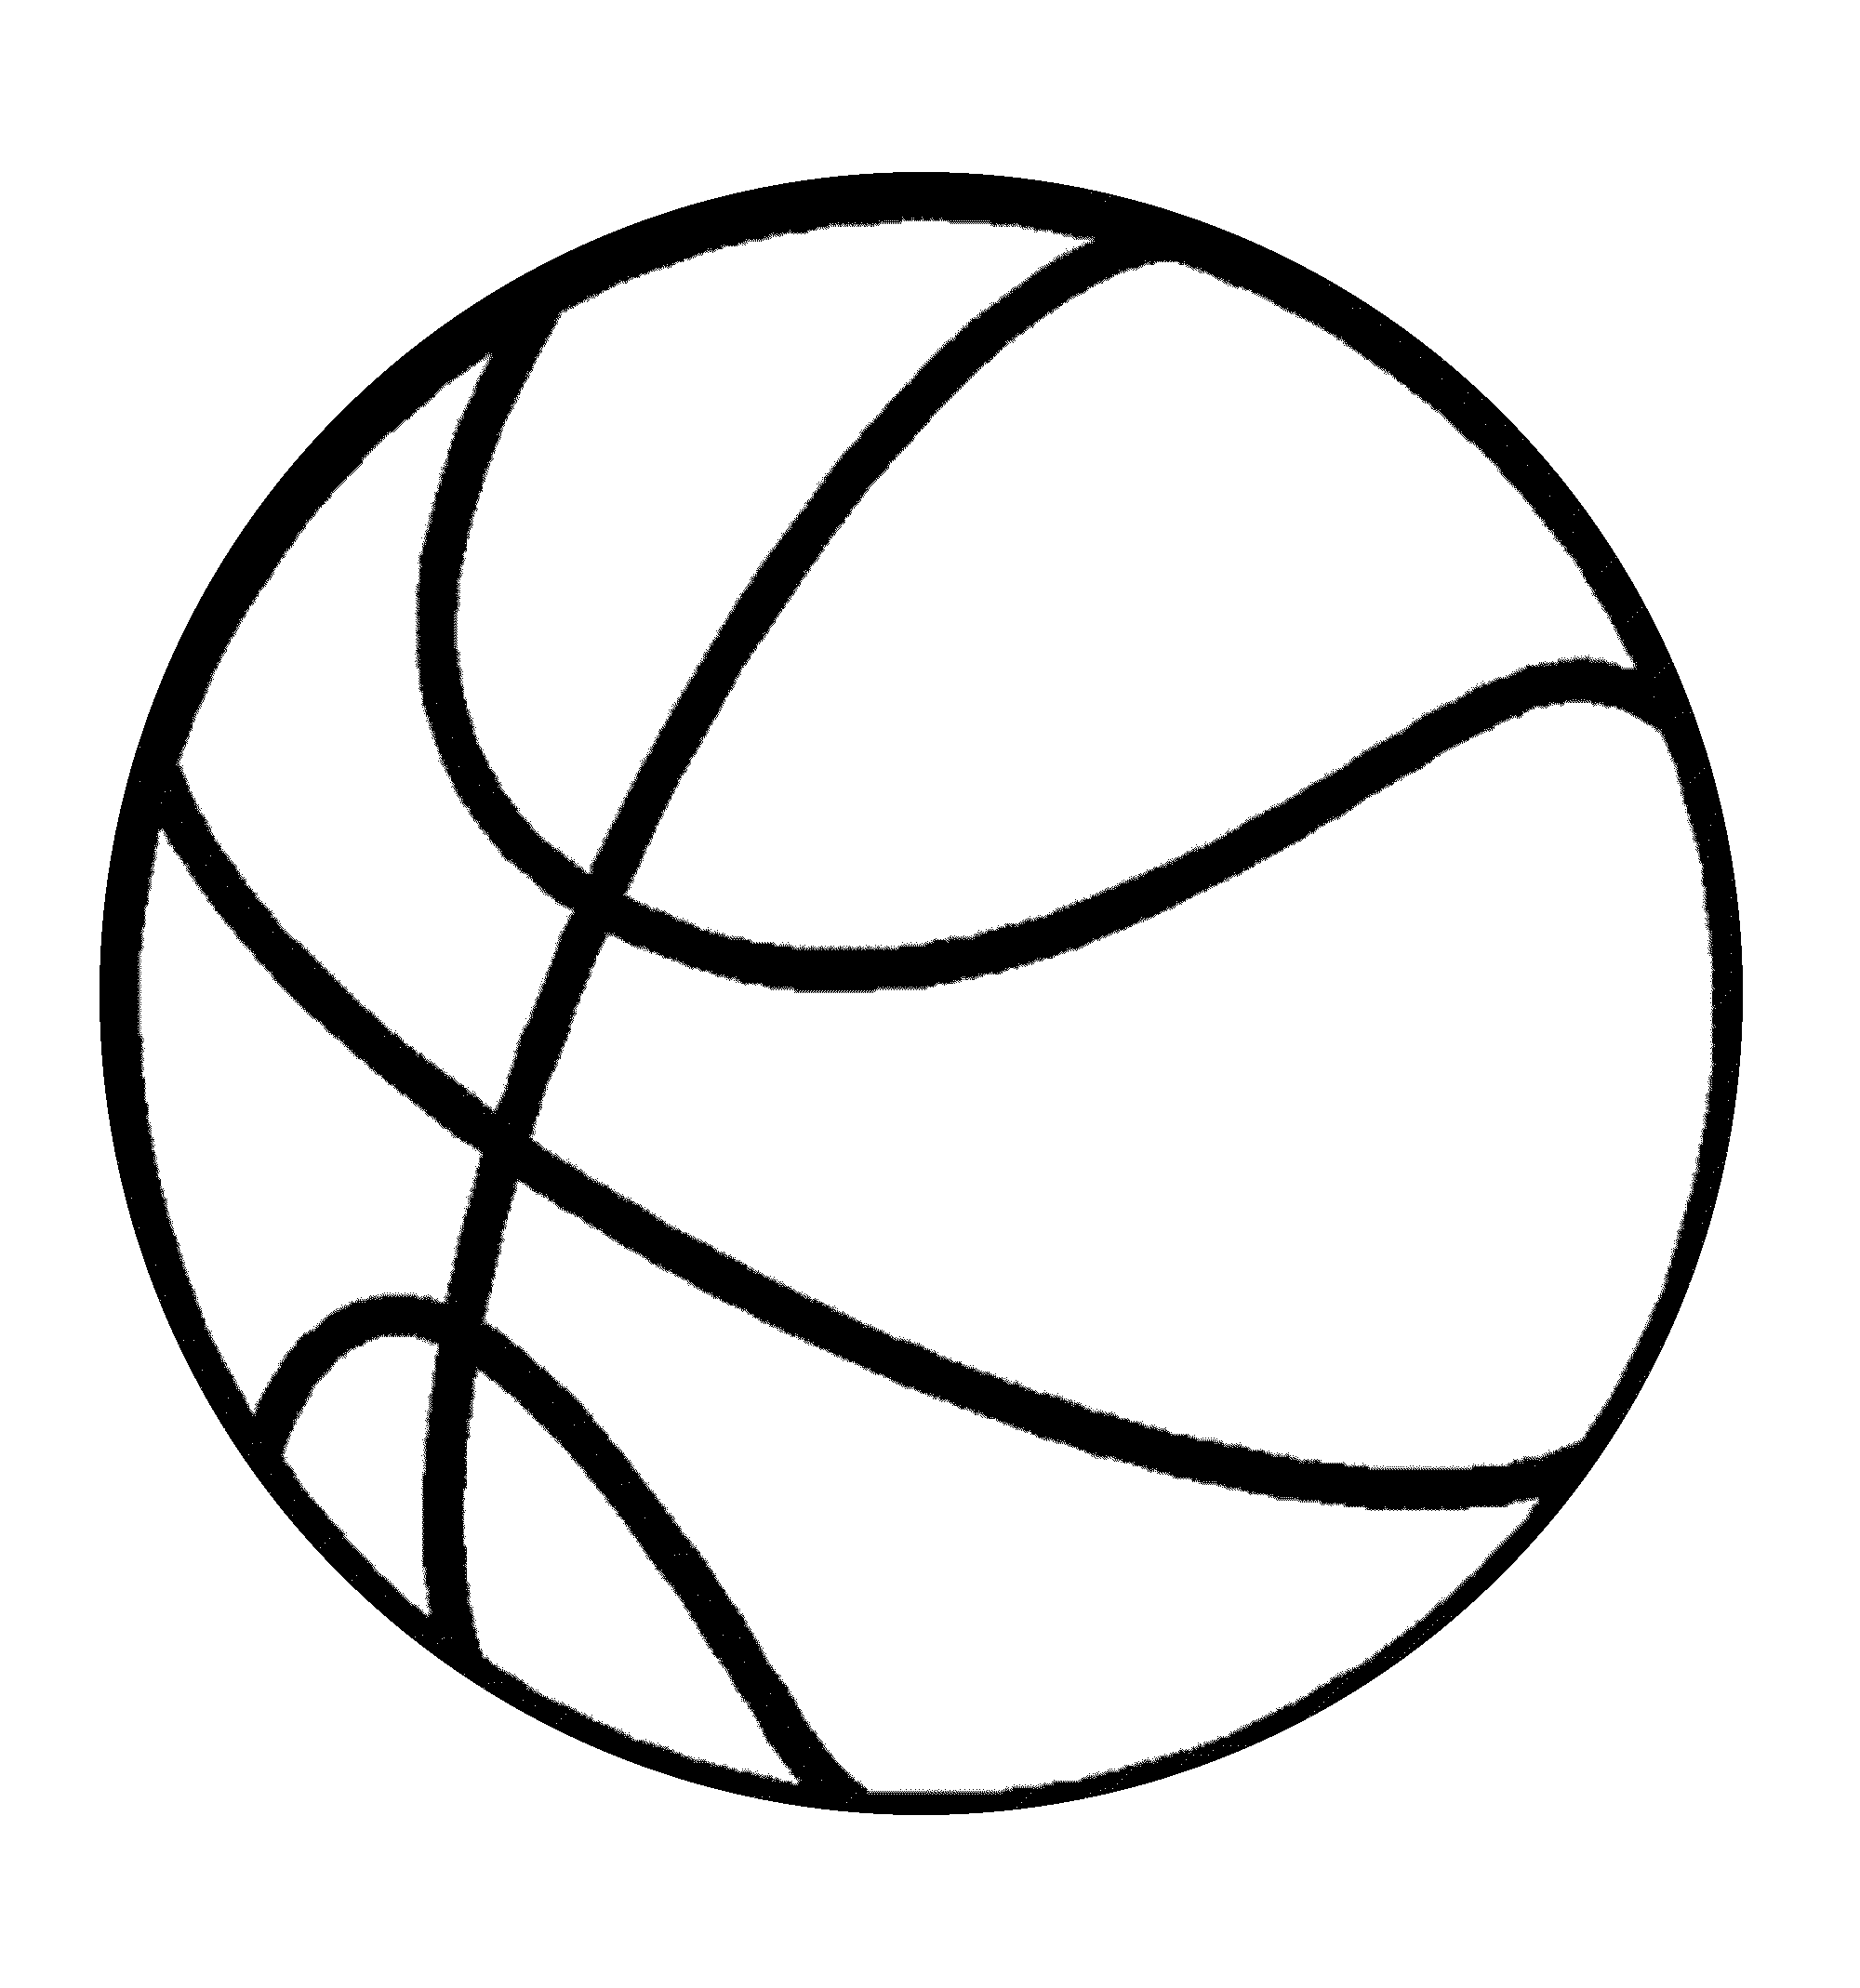 basketball pictures to color 30 free printable basketball coloring pages basketball color to pictures